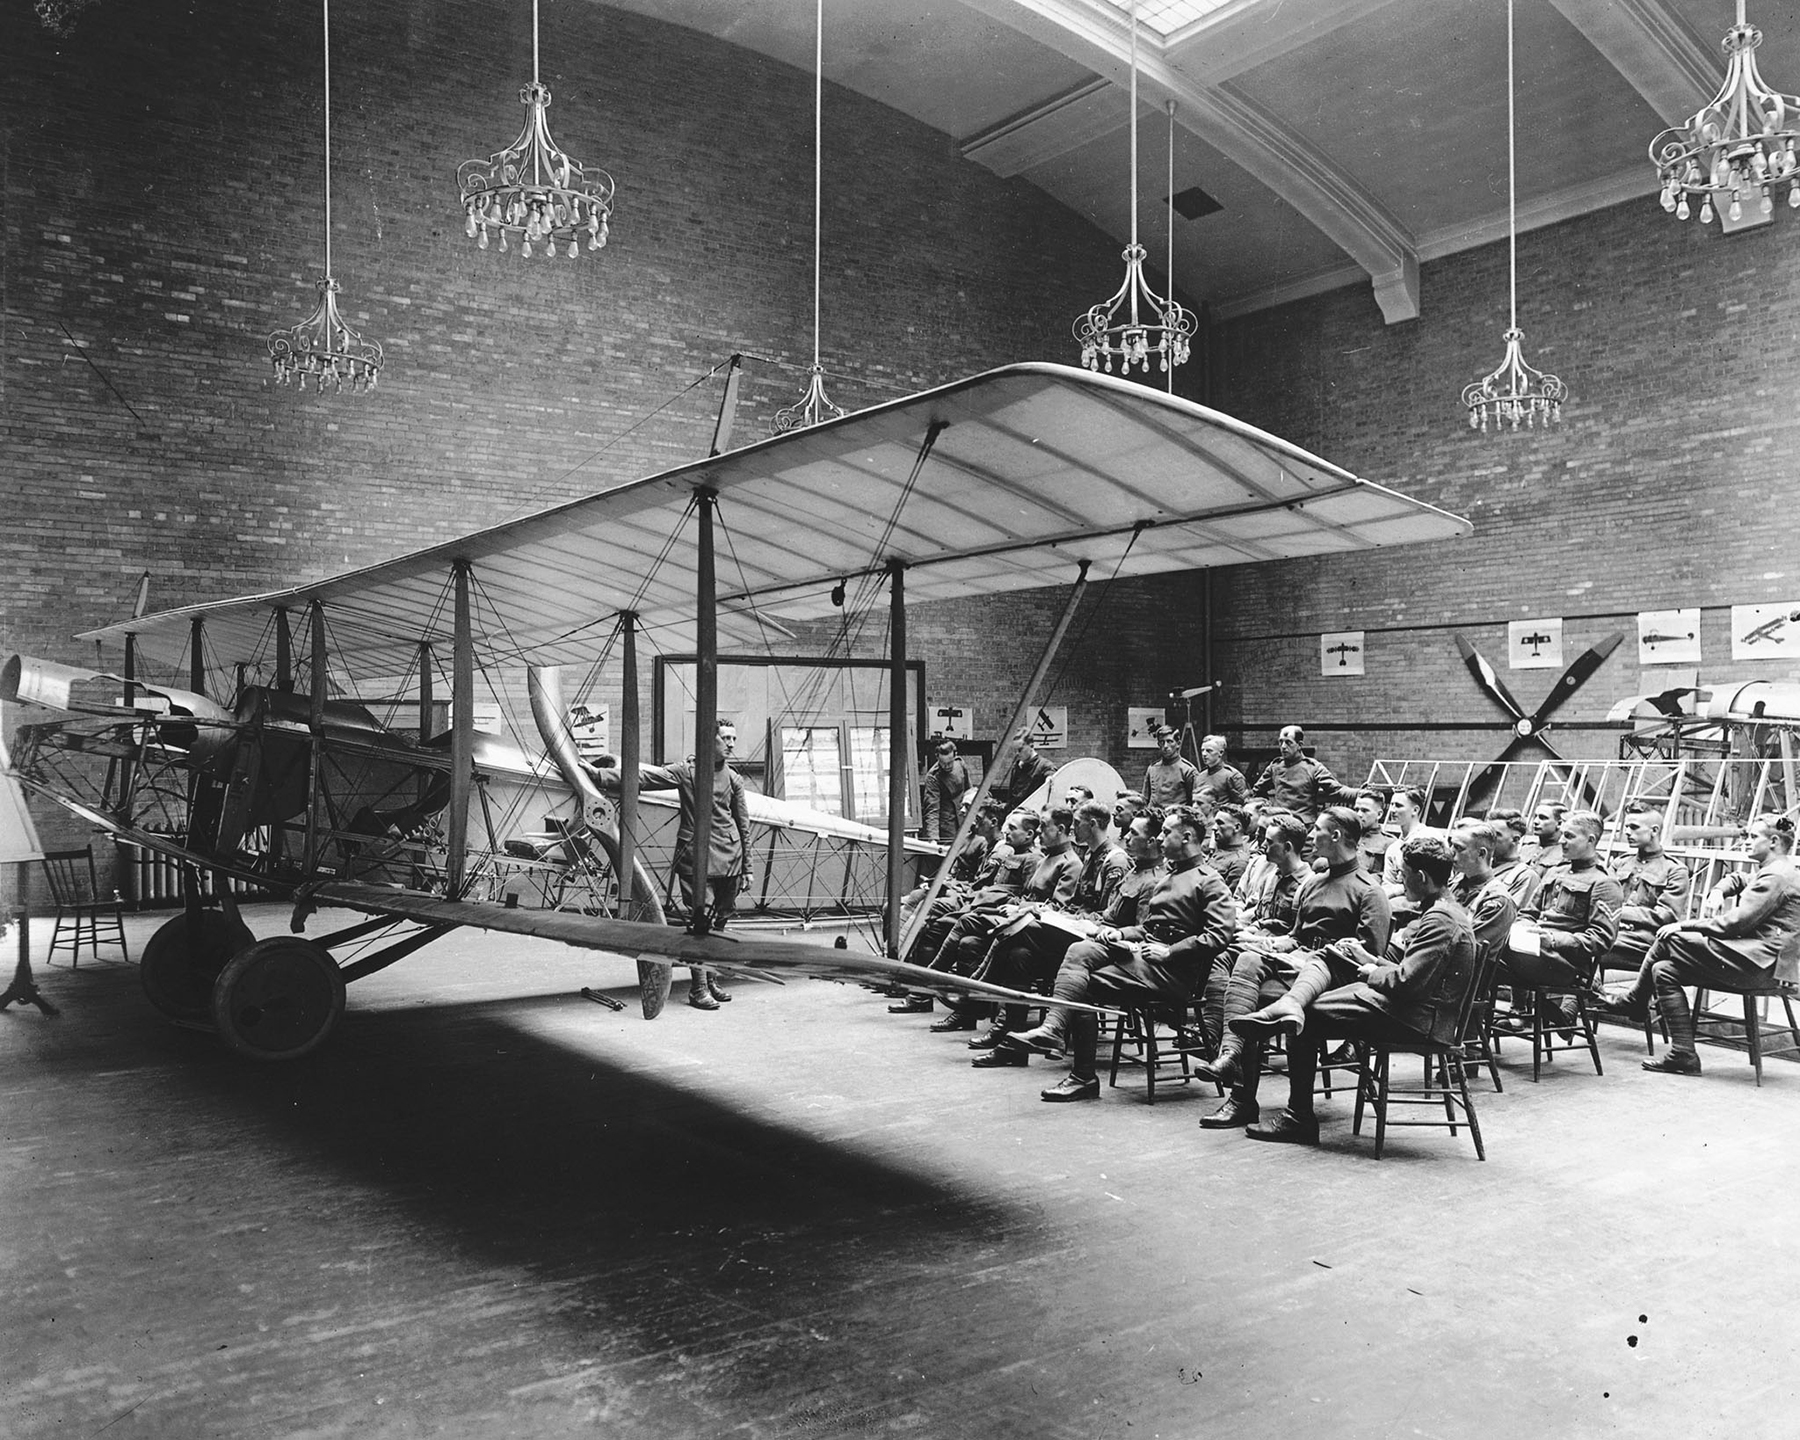 Des militaires du Royal Flying Corps Canada assistent à une présentation sur le cordage et la structure d'aéronefs à l'École d'aviation de Toronto, en Ontario. PHOTO : Archives du MDN, RE-19062-40